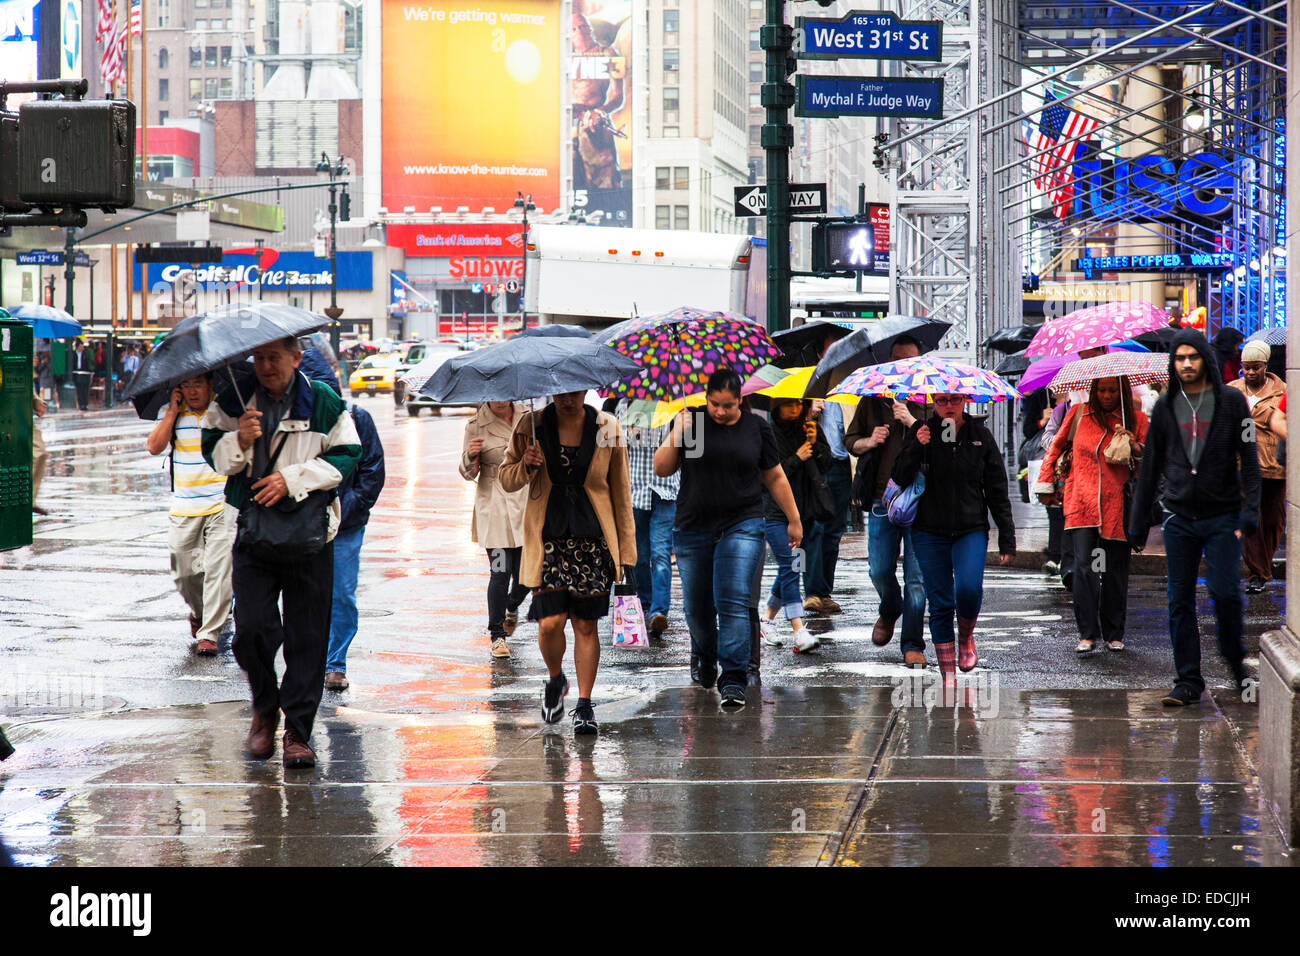 Wet raining winter day Manhattan New York City rain weather NY NYC USA America United States miserable winters downpour - Stock Image